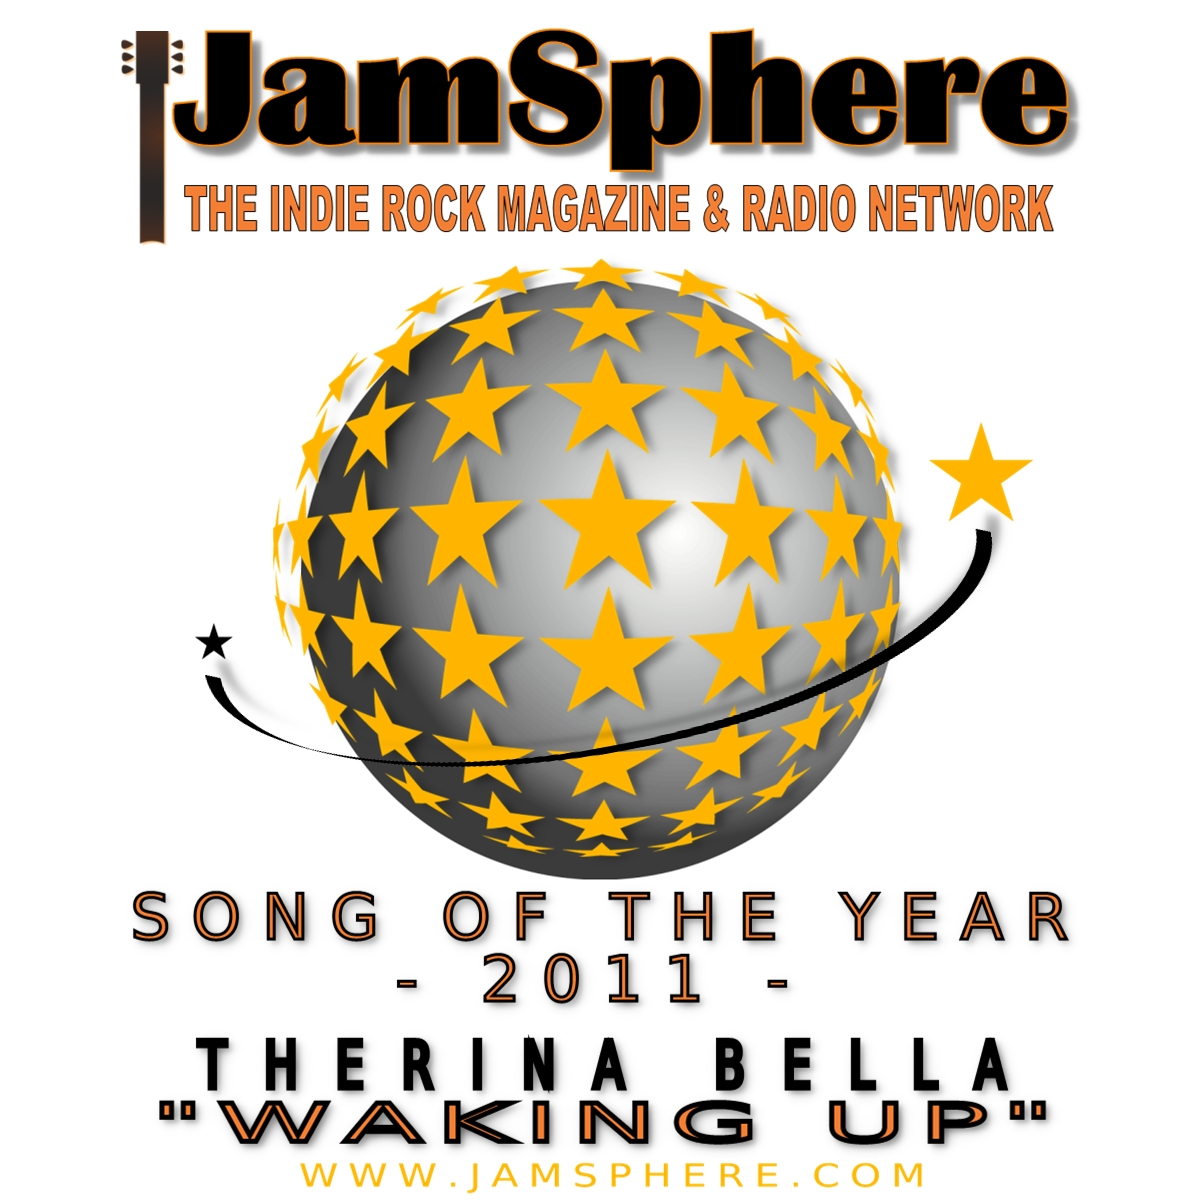 """2011 JAMSPHERE INDIE MUSIC AWARDS"": WINNERS – ANNA JOHNSON & THERINA BELLA !"